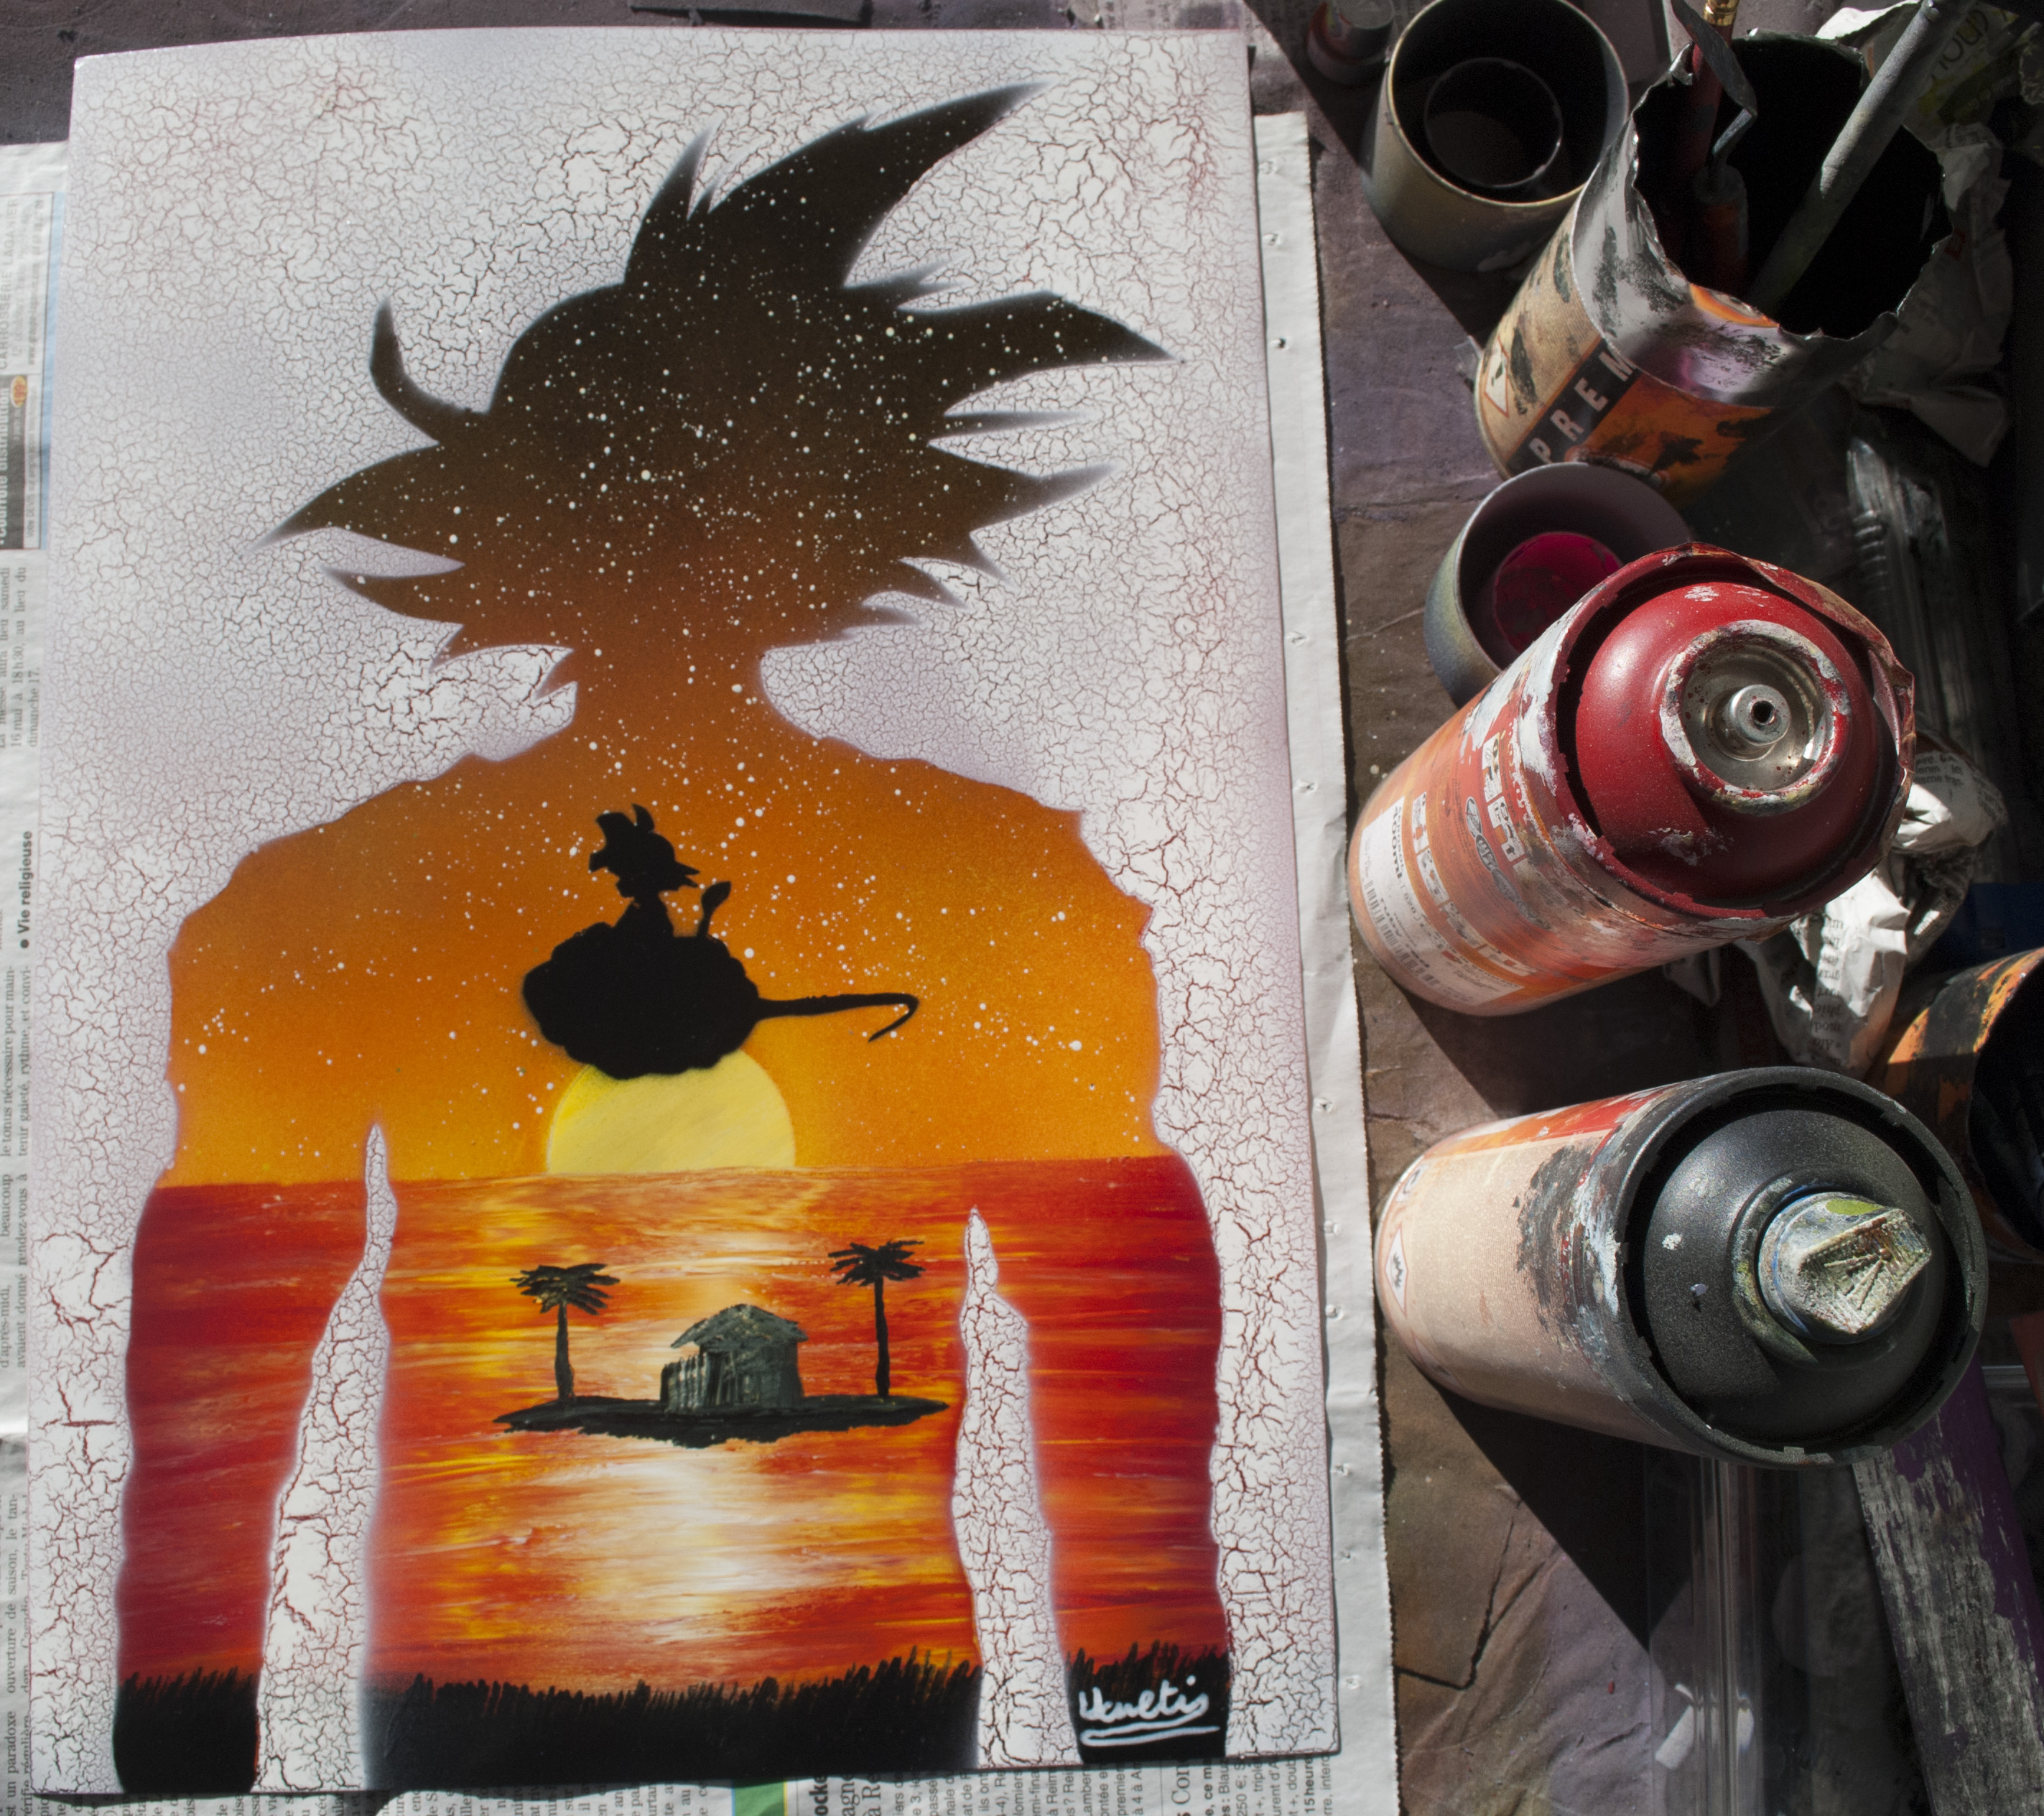 DragonBall spray paint art by Ucuetis